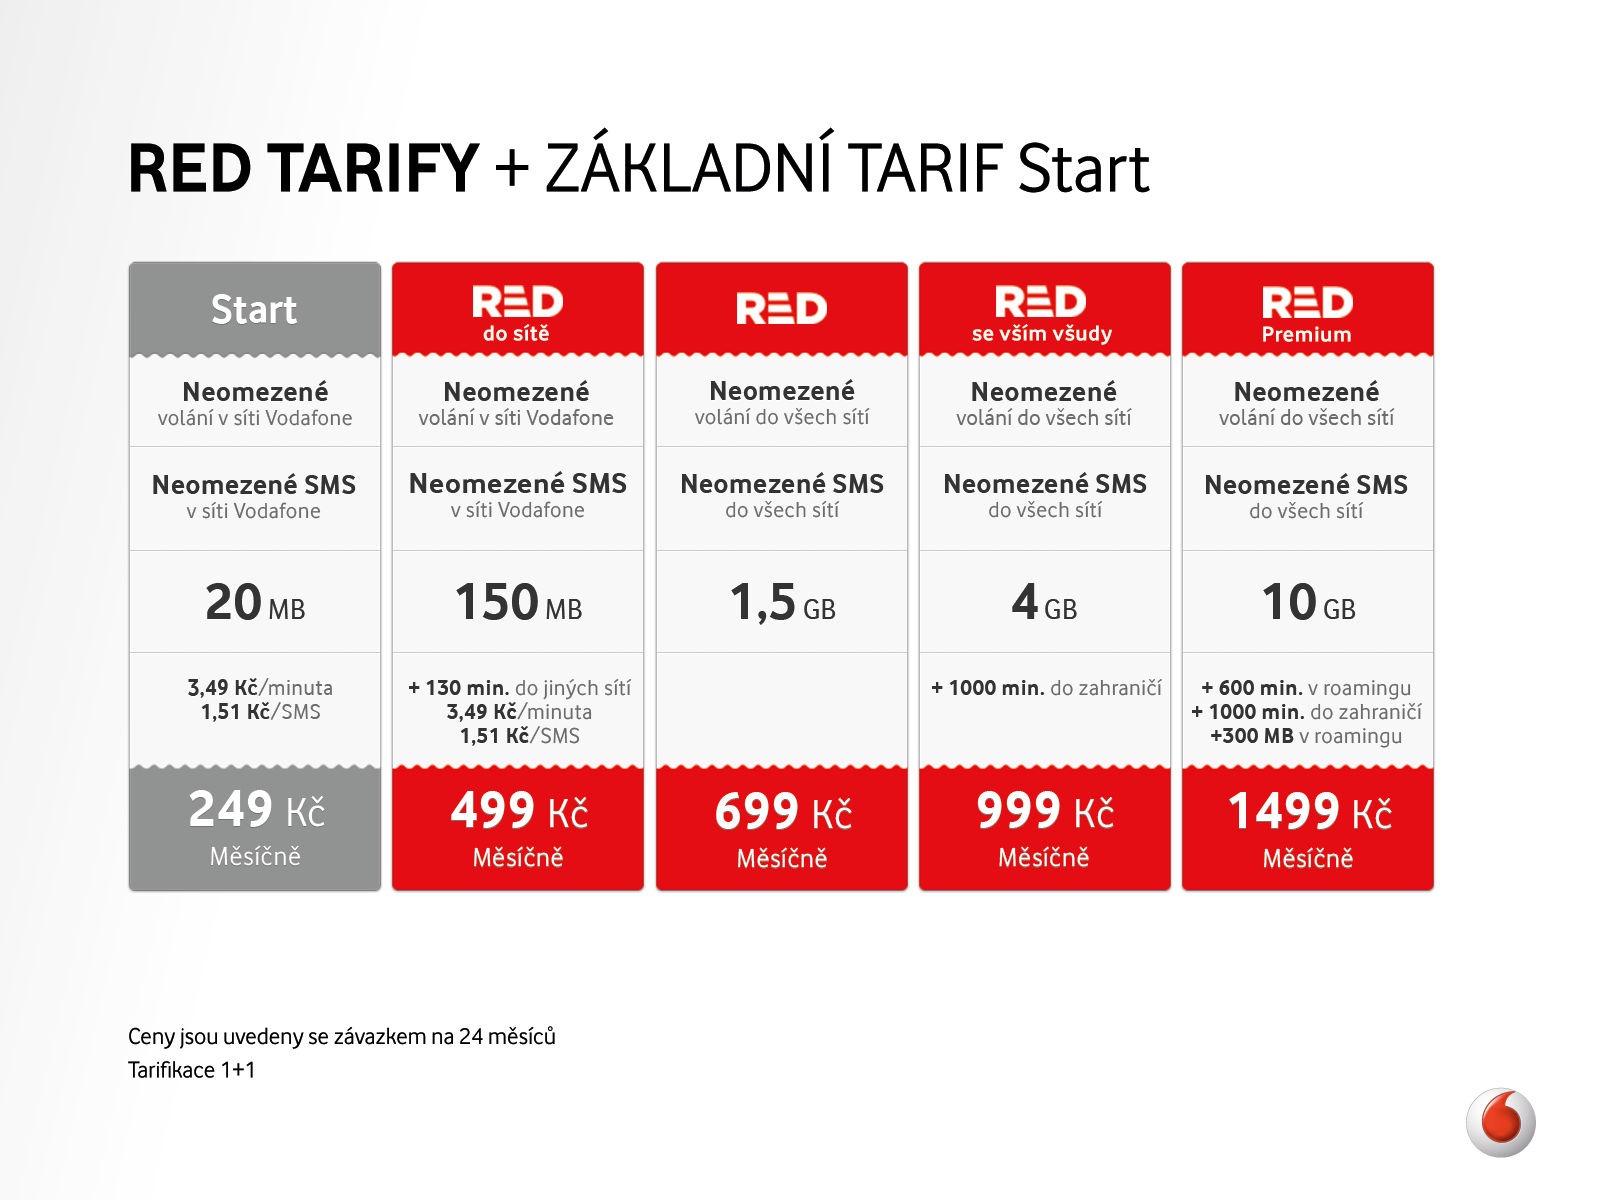 Vodafone offers unlimited calls and SMS for the best prices on the